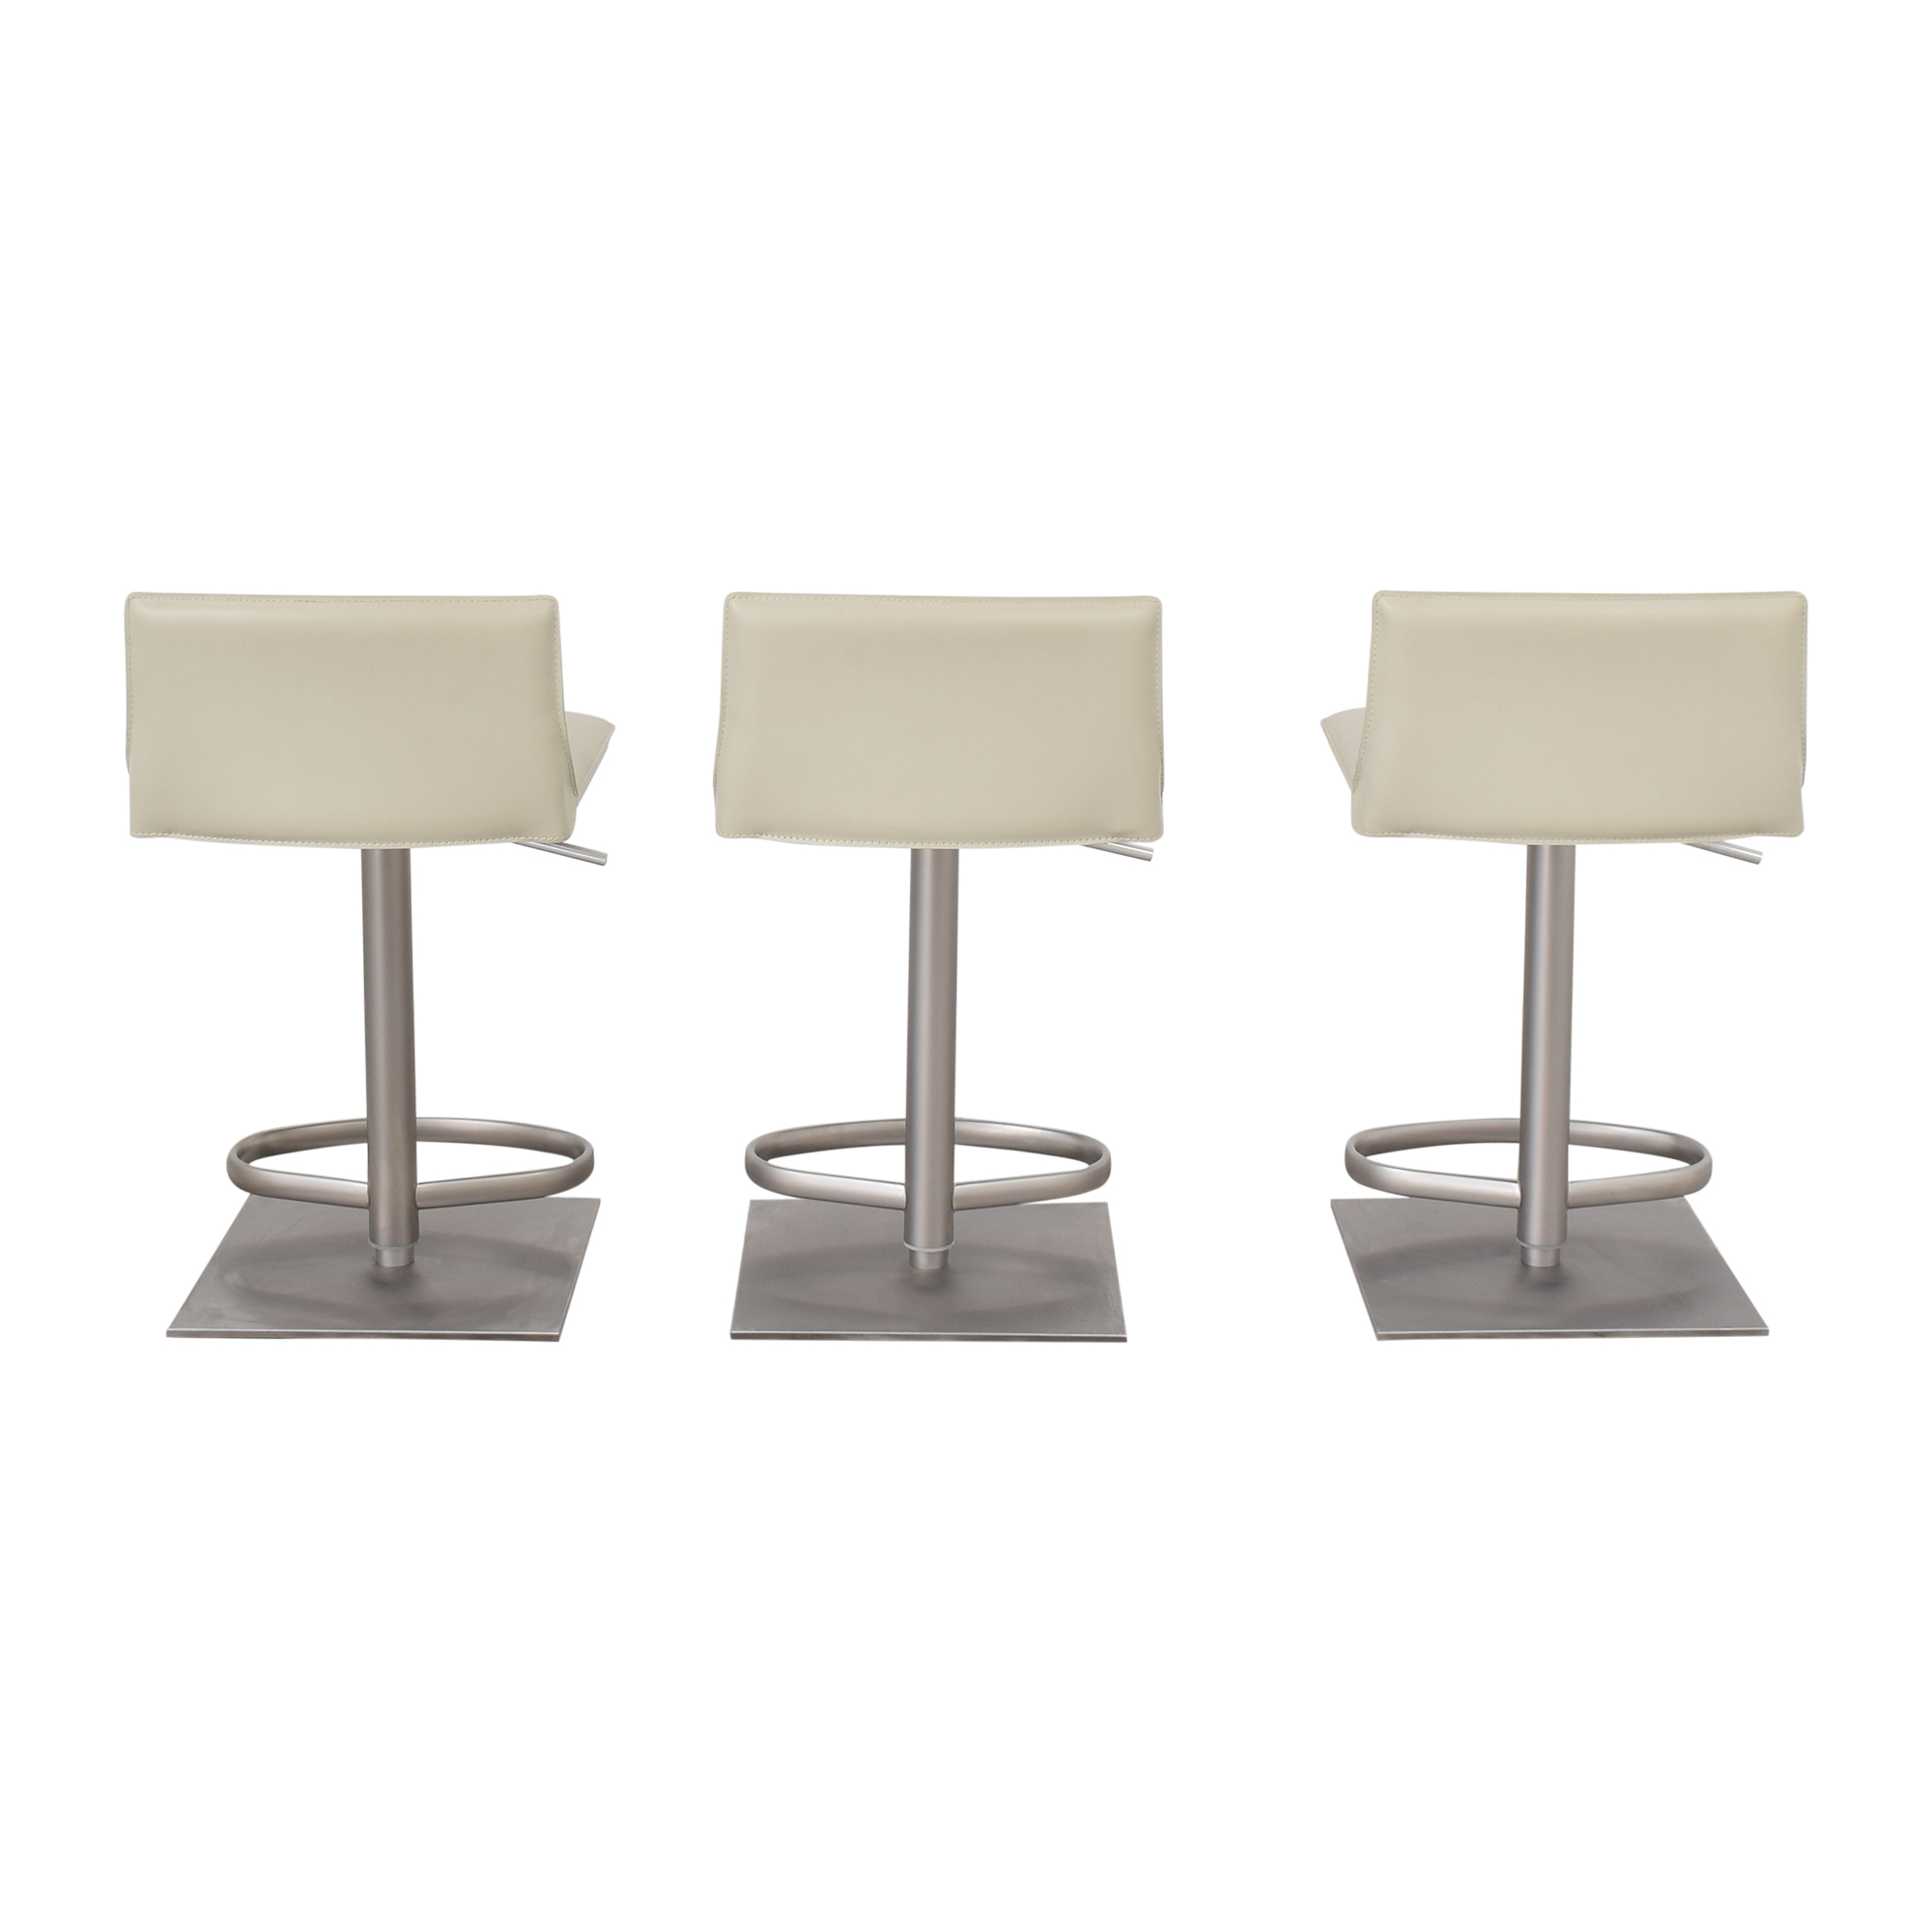 buy Frag Latina GP Stools Frag Chairs